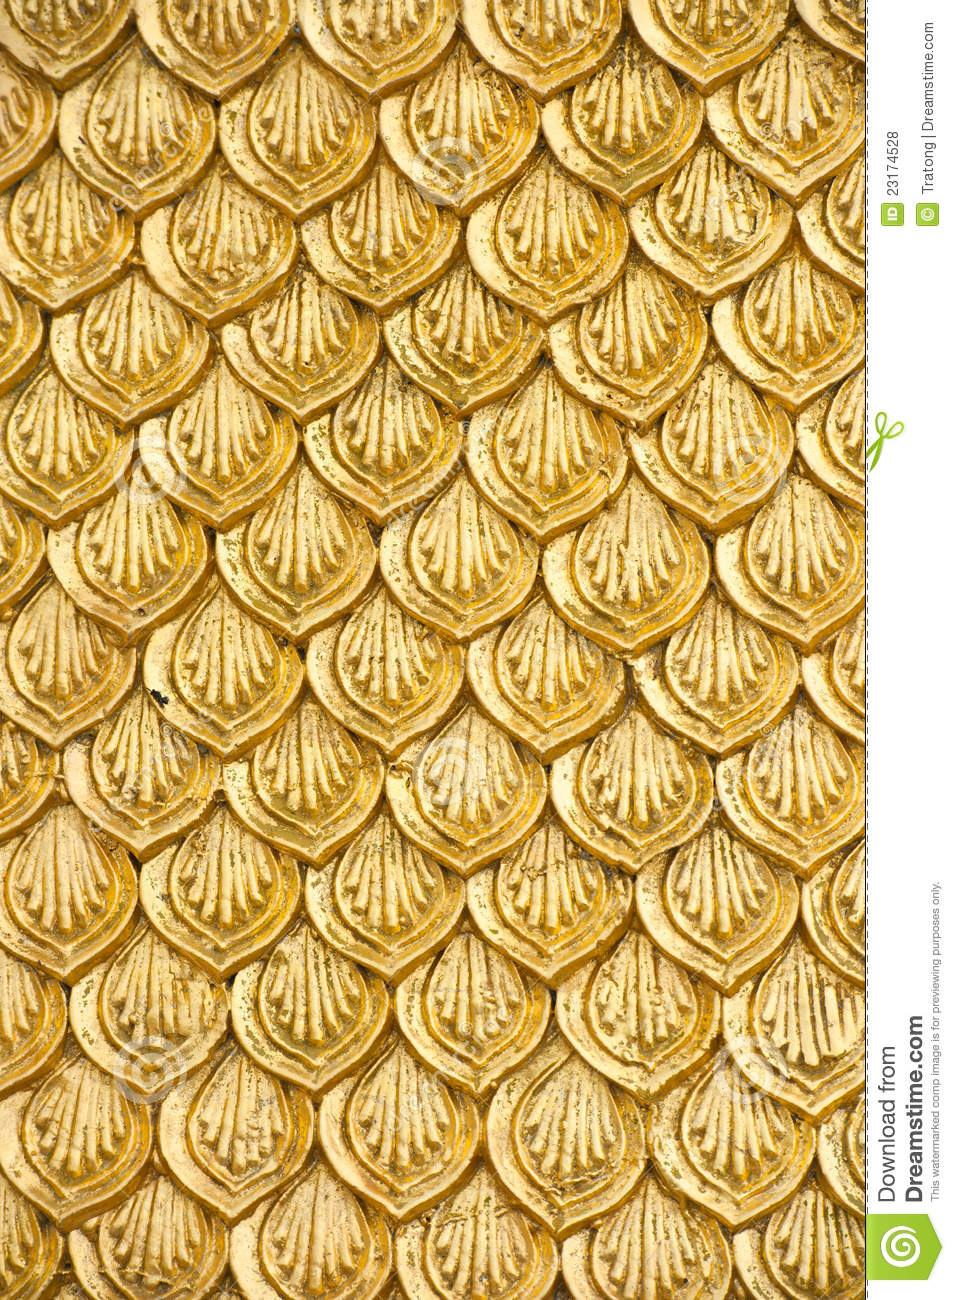 Dragon Skin Texture Royalty Free Stock Photos Image